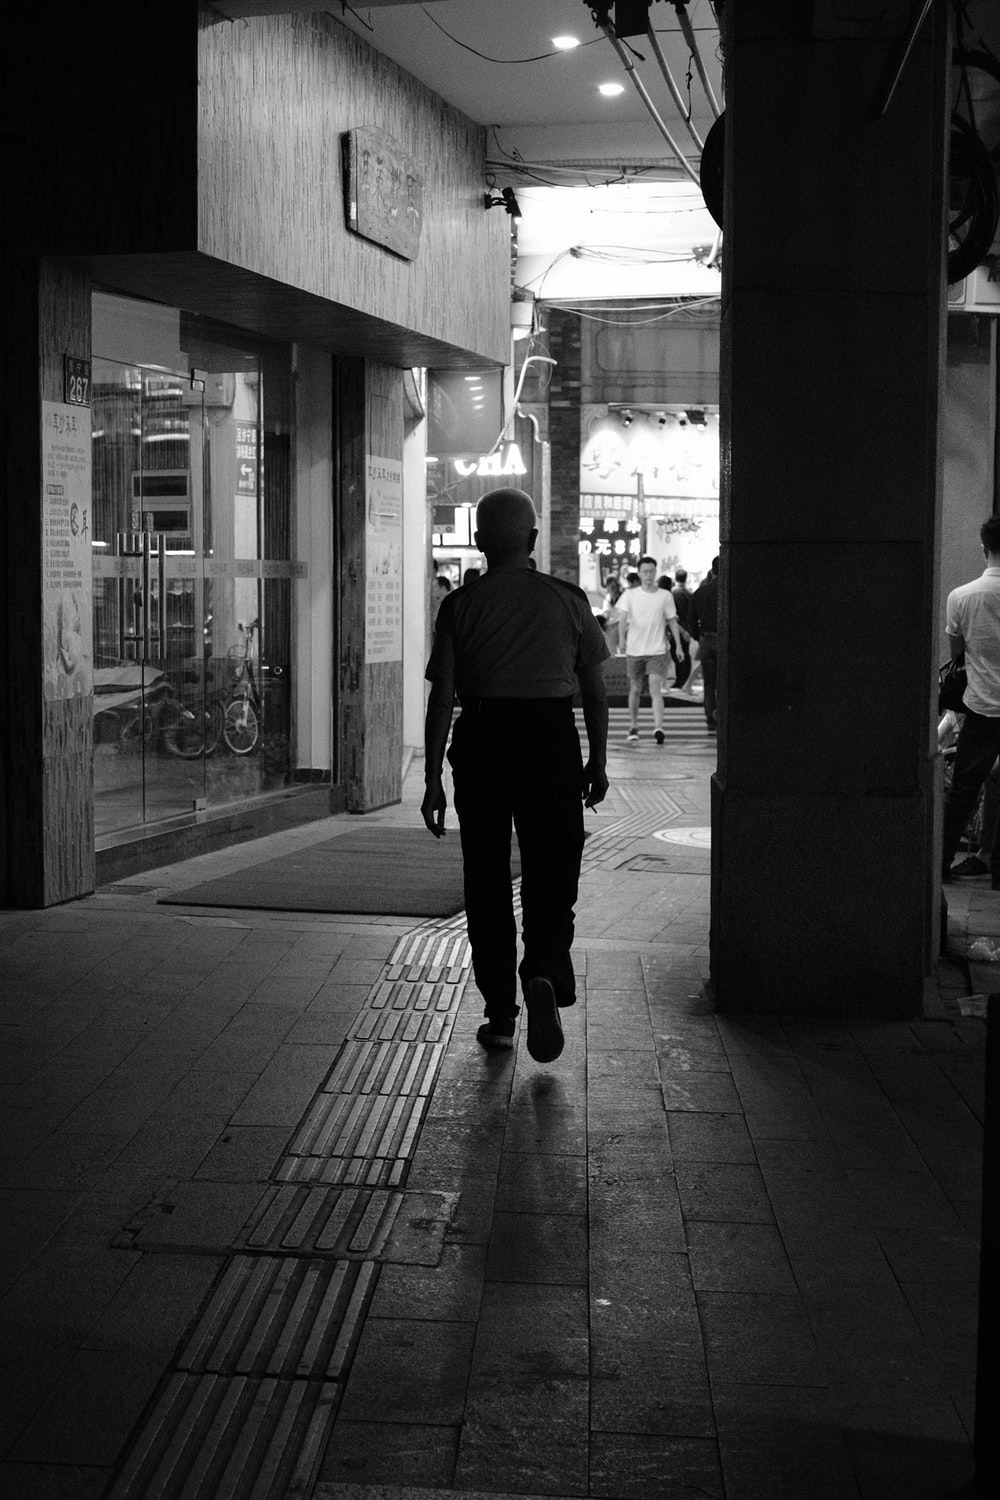 grayscale photo of a person walking